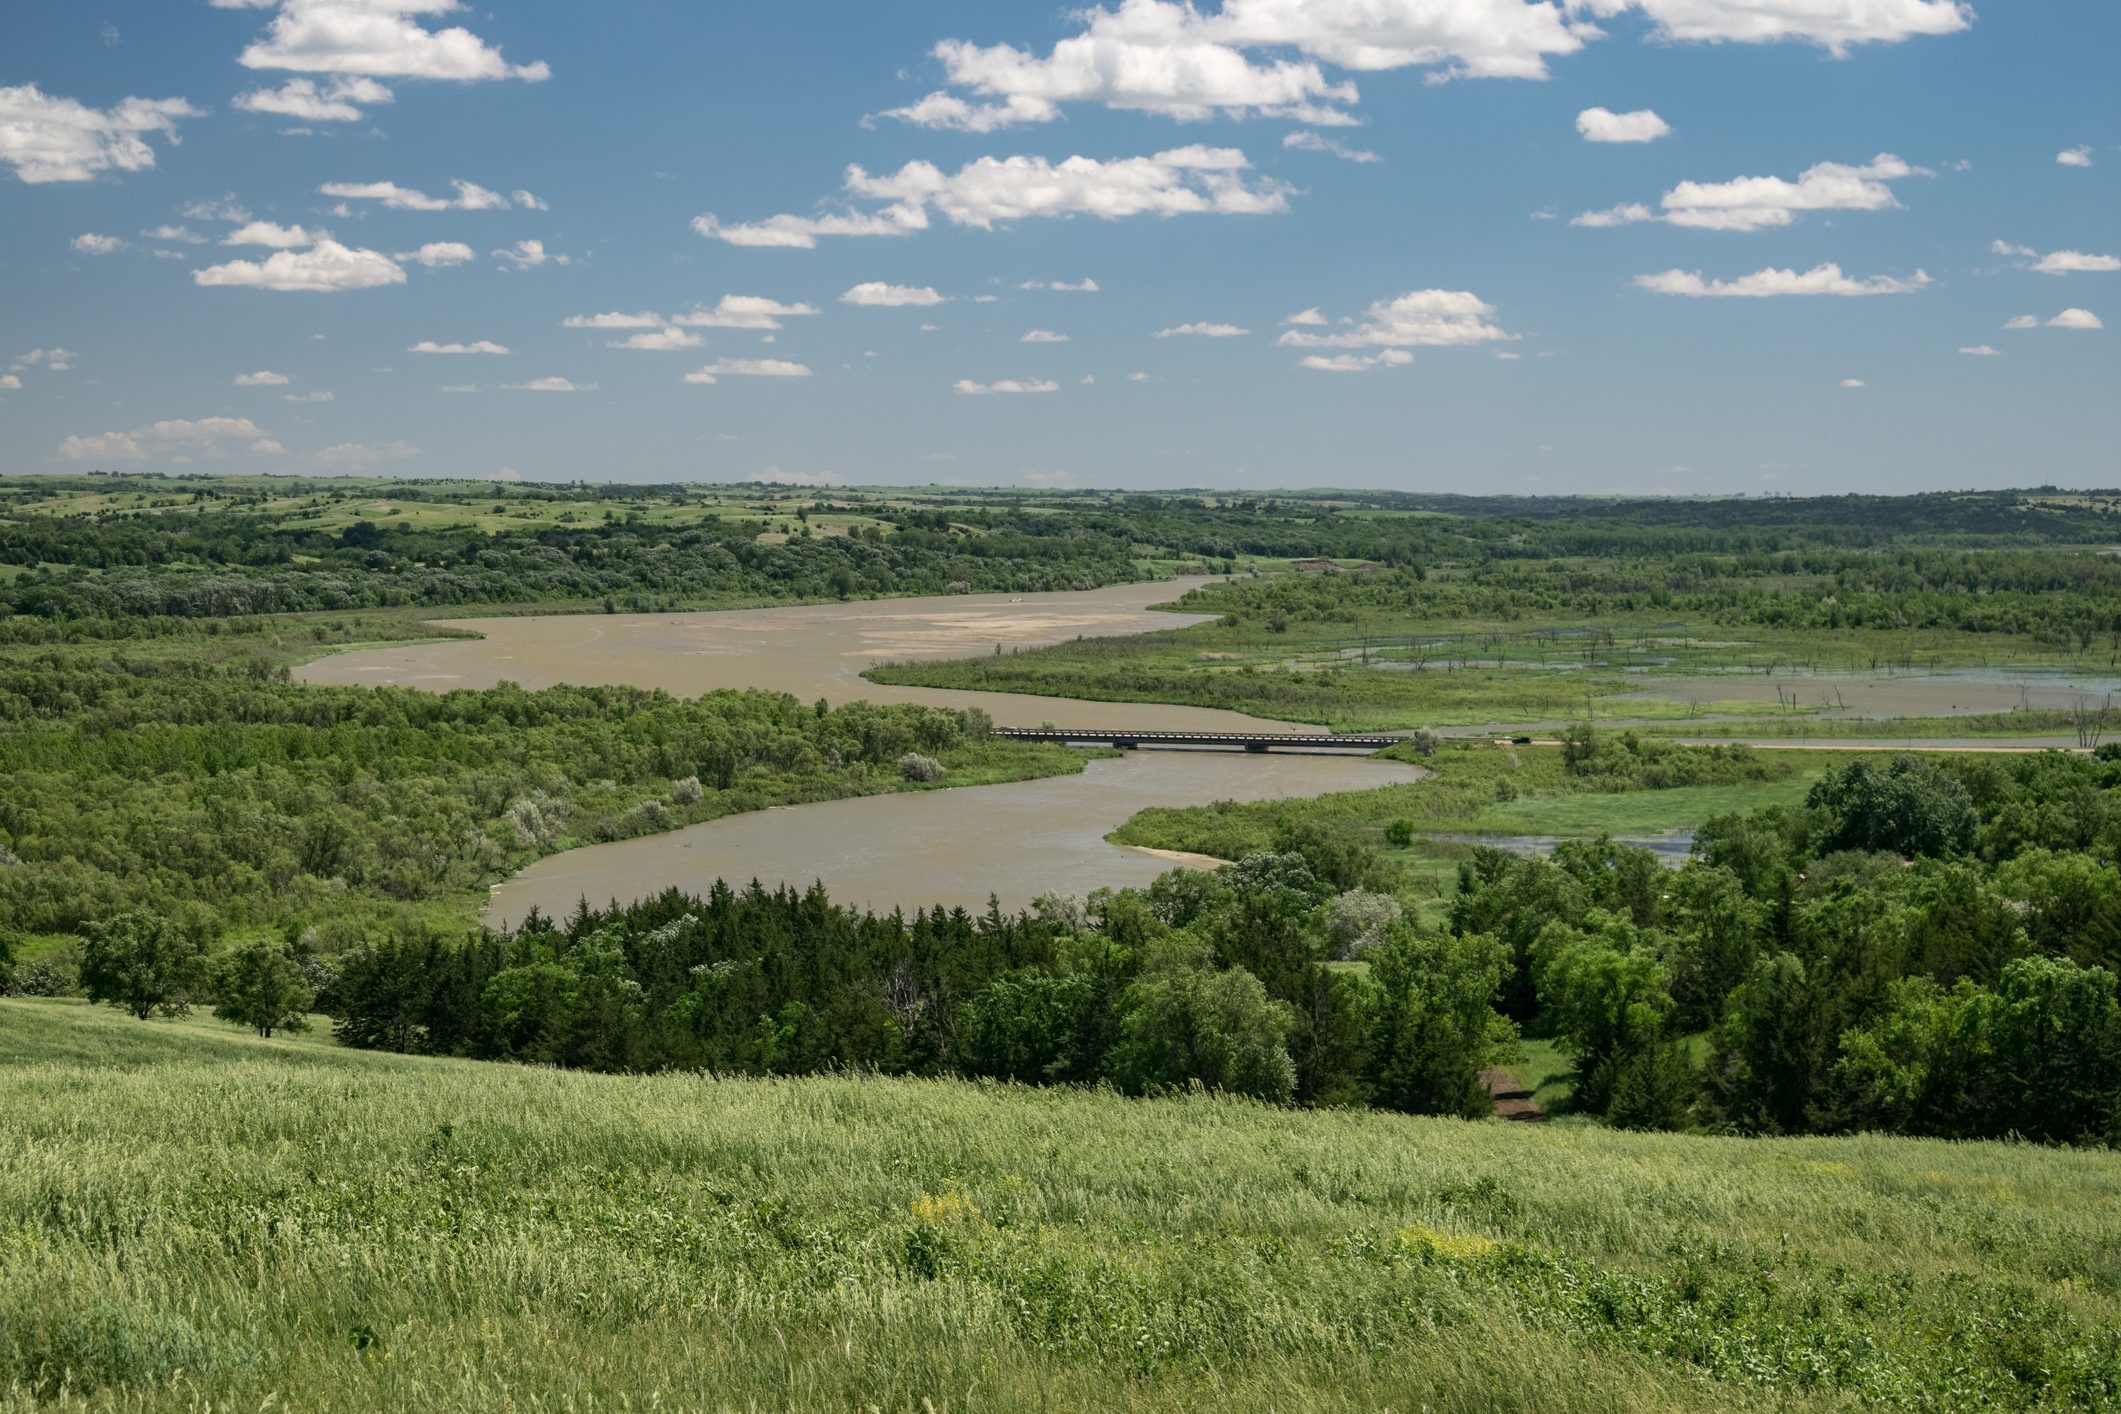 View of the Missouri river from a hill in Niobrara state park, Nebraska